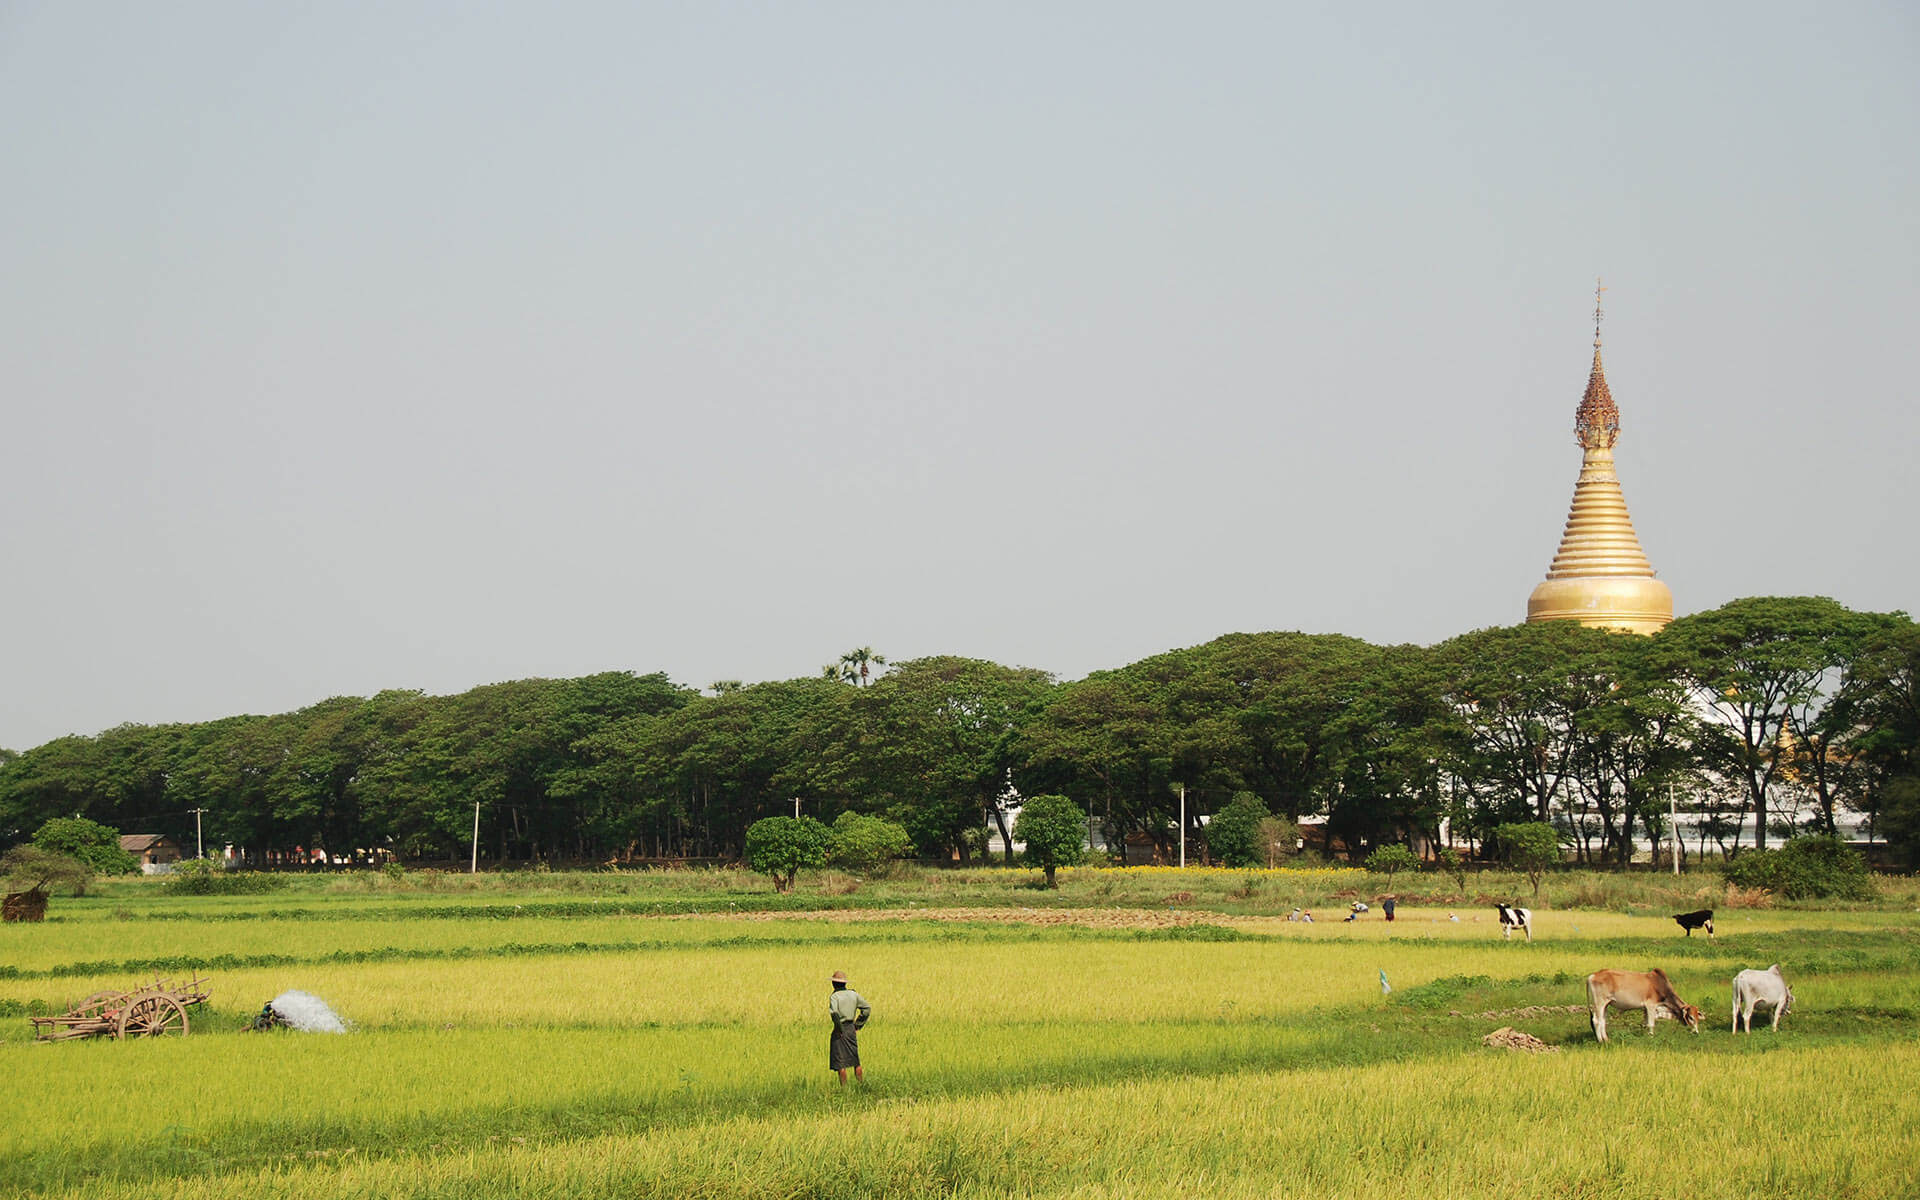 Rice in Irrawaddy